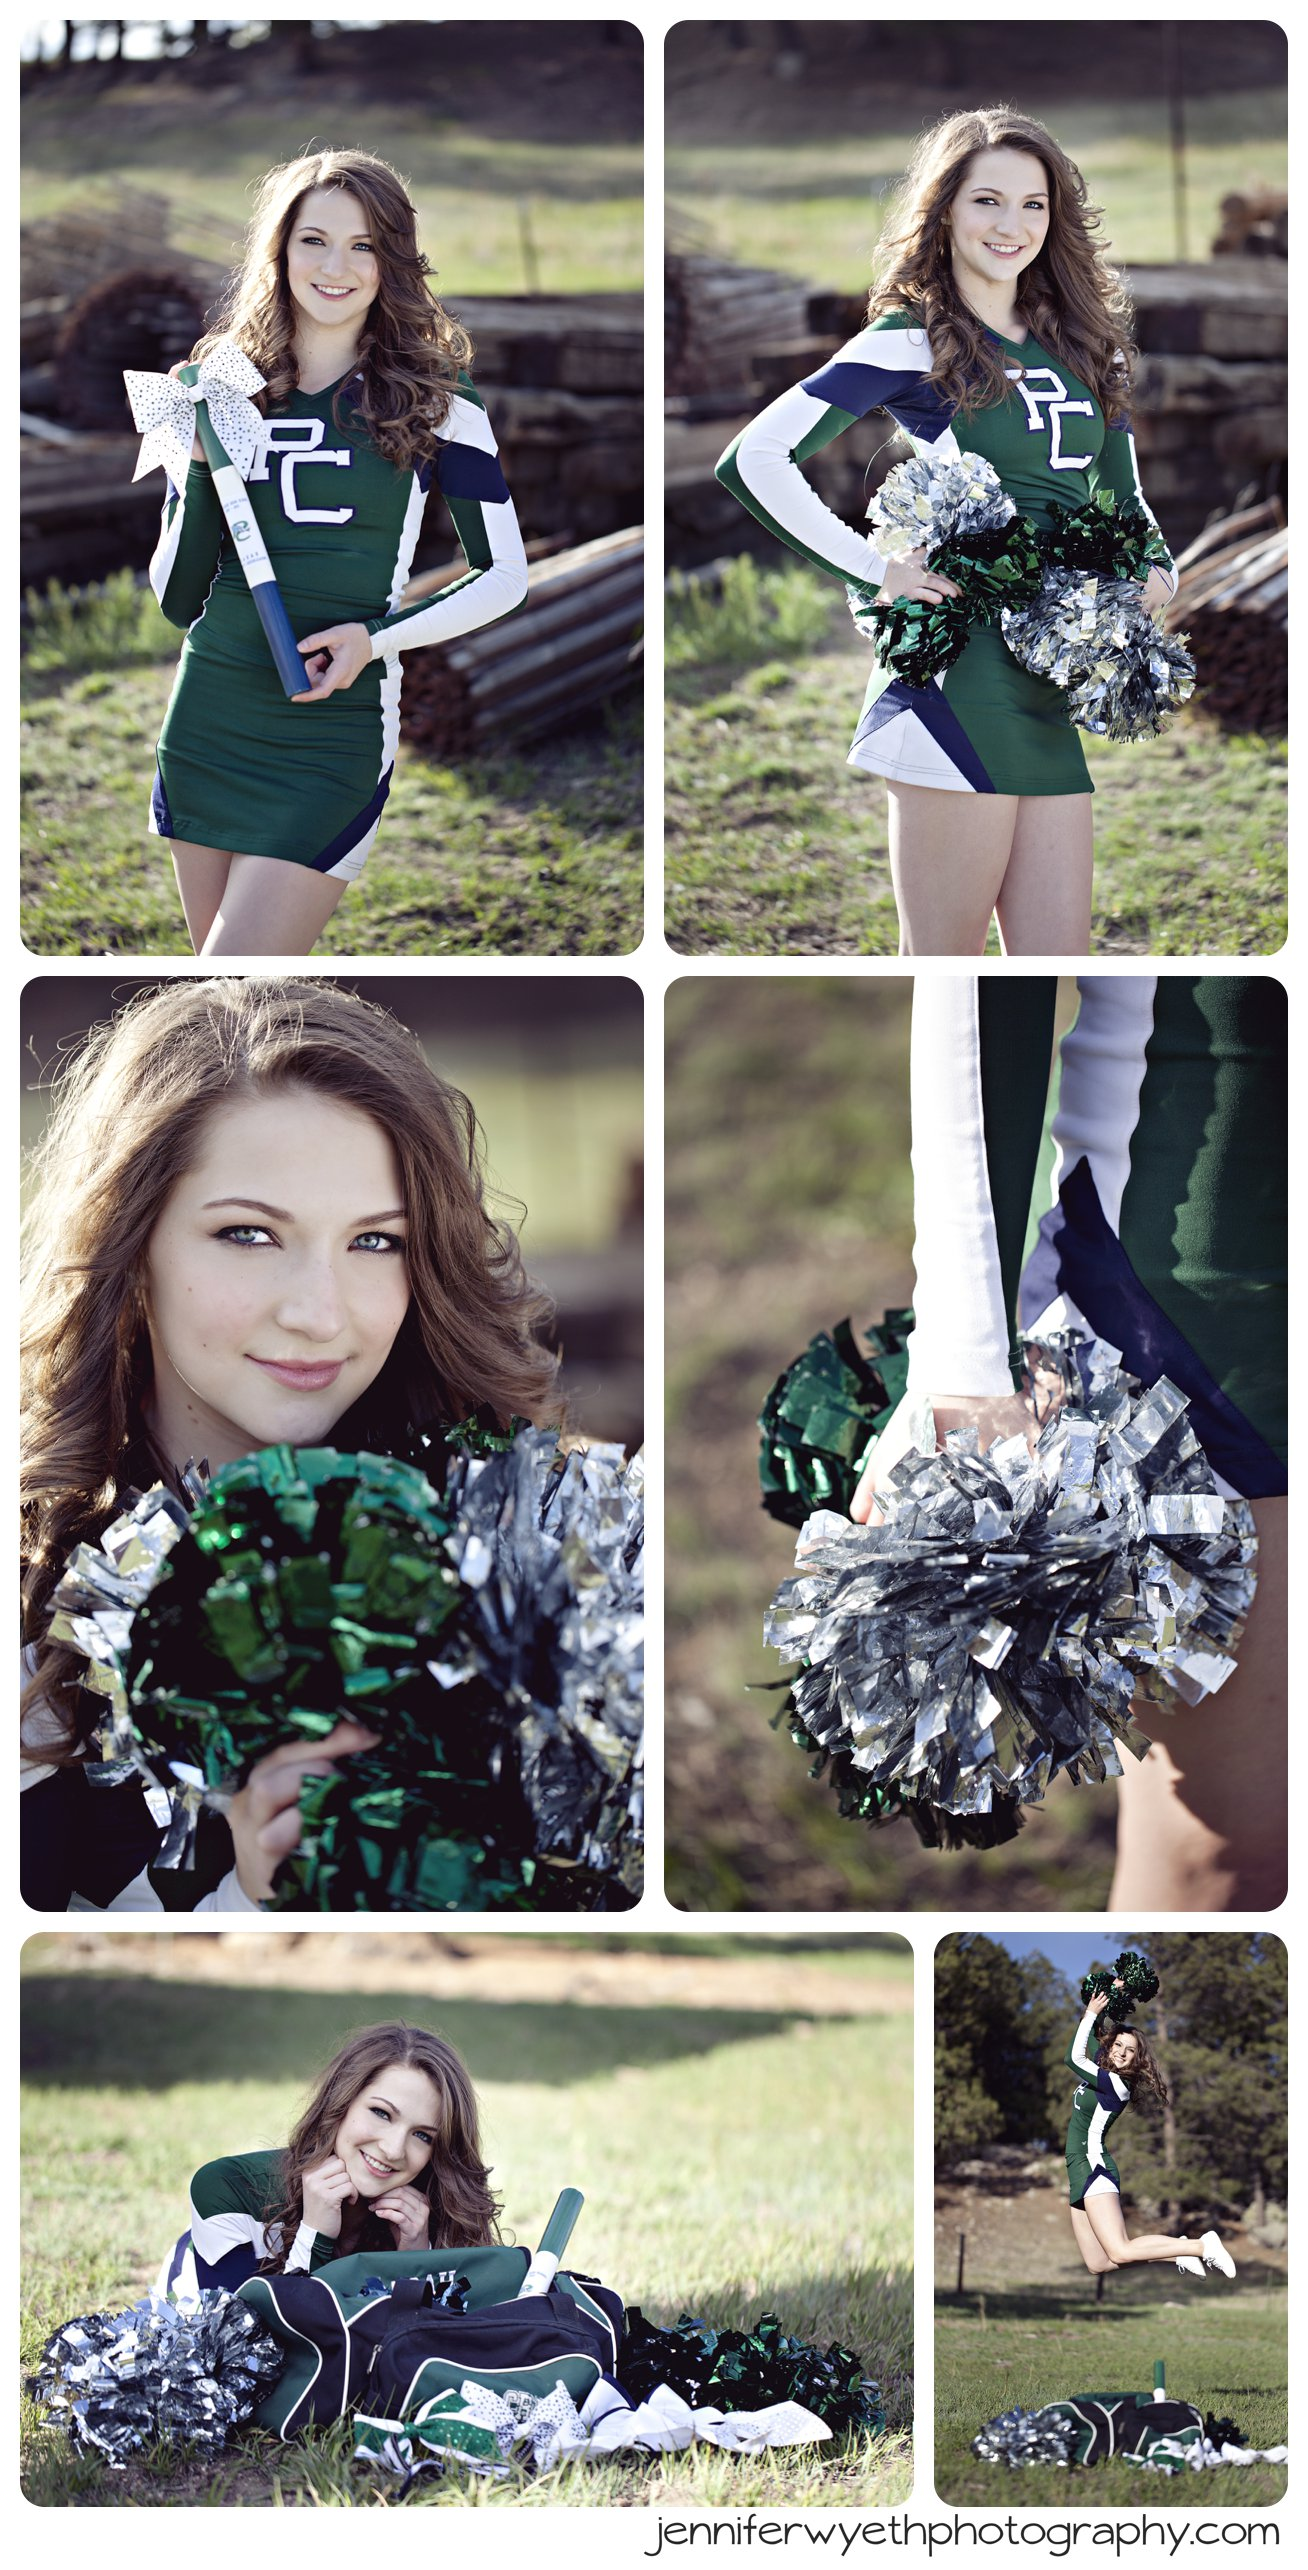 cheer captain in green and blue cheer uniform with poms and bows